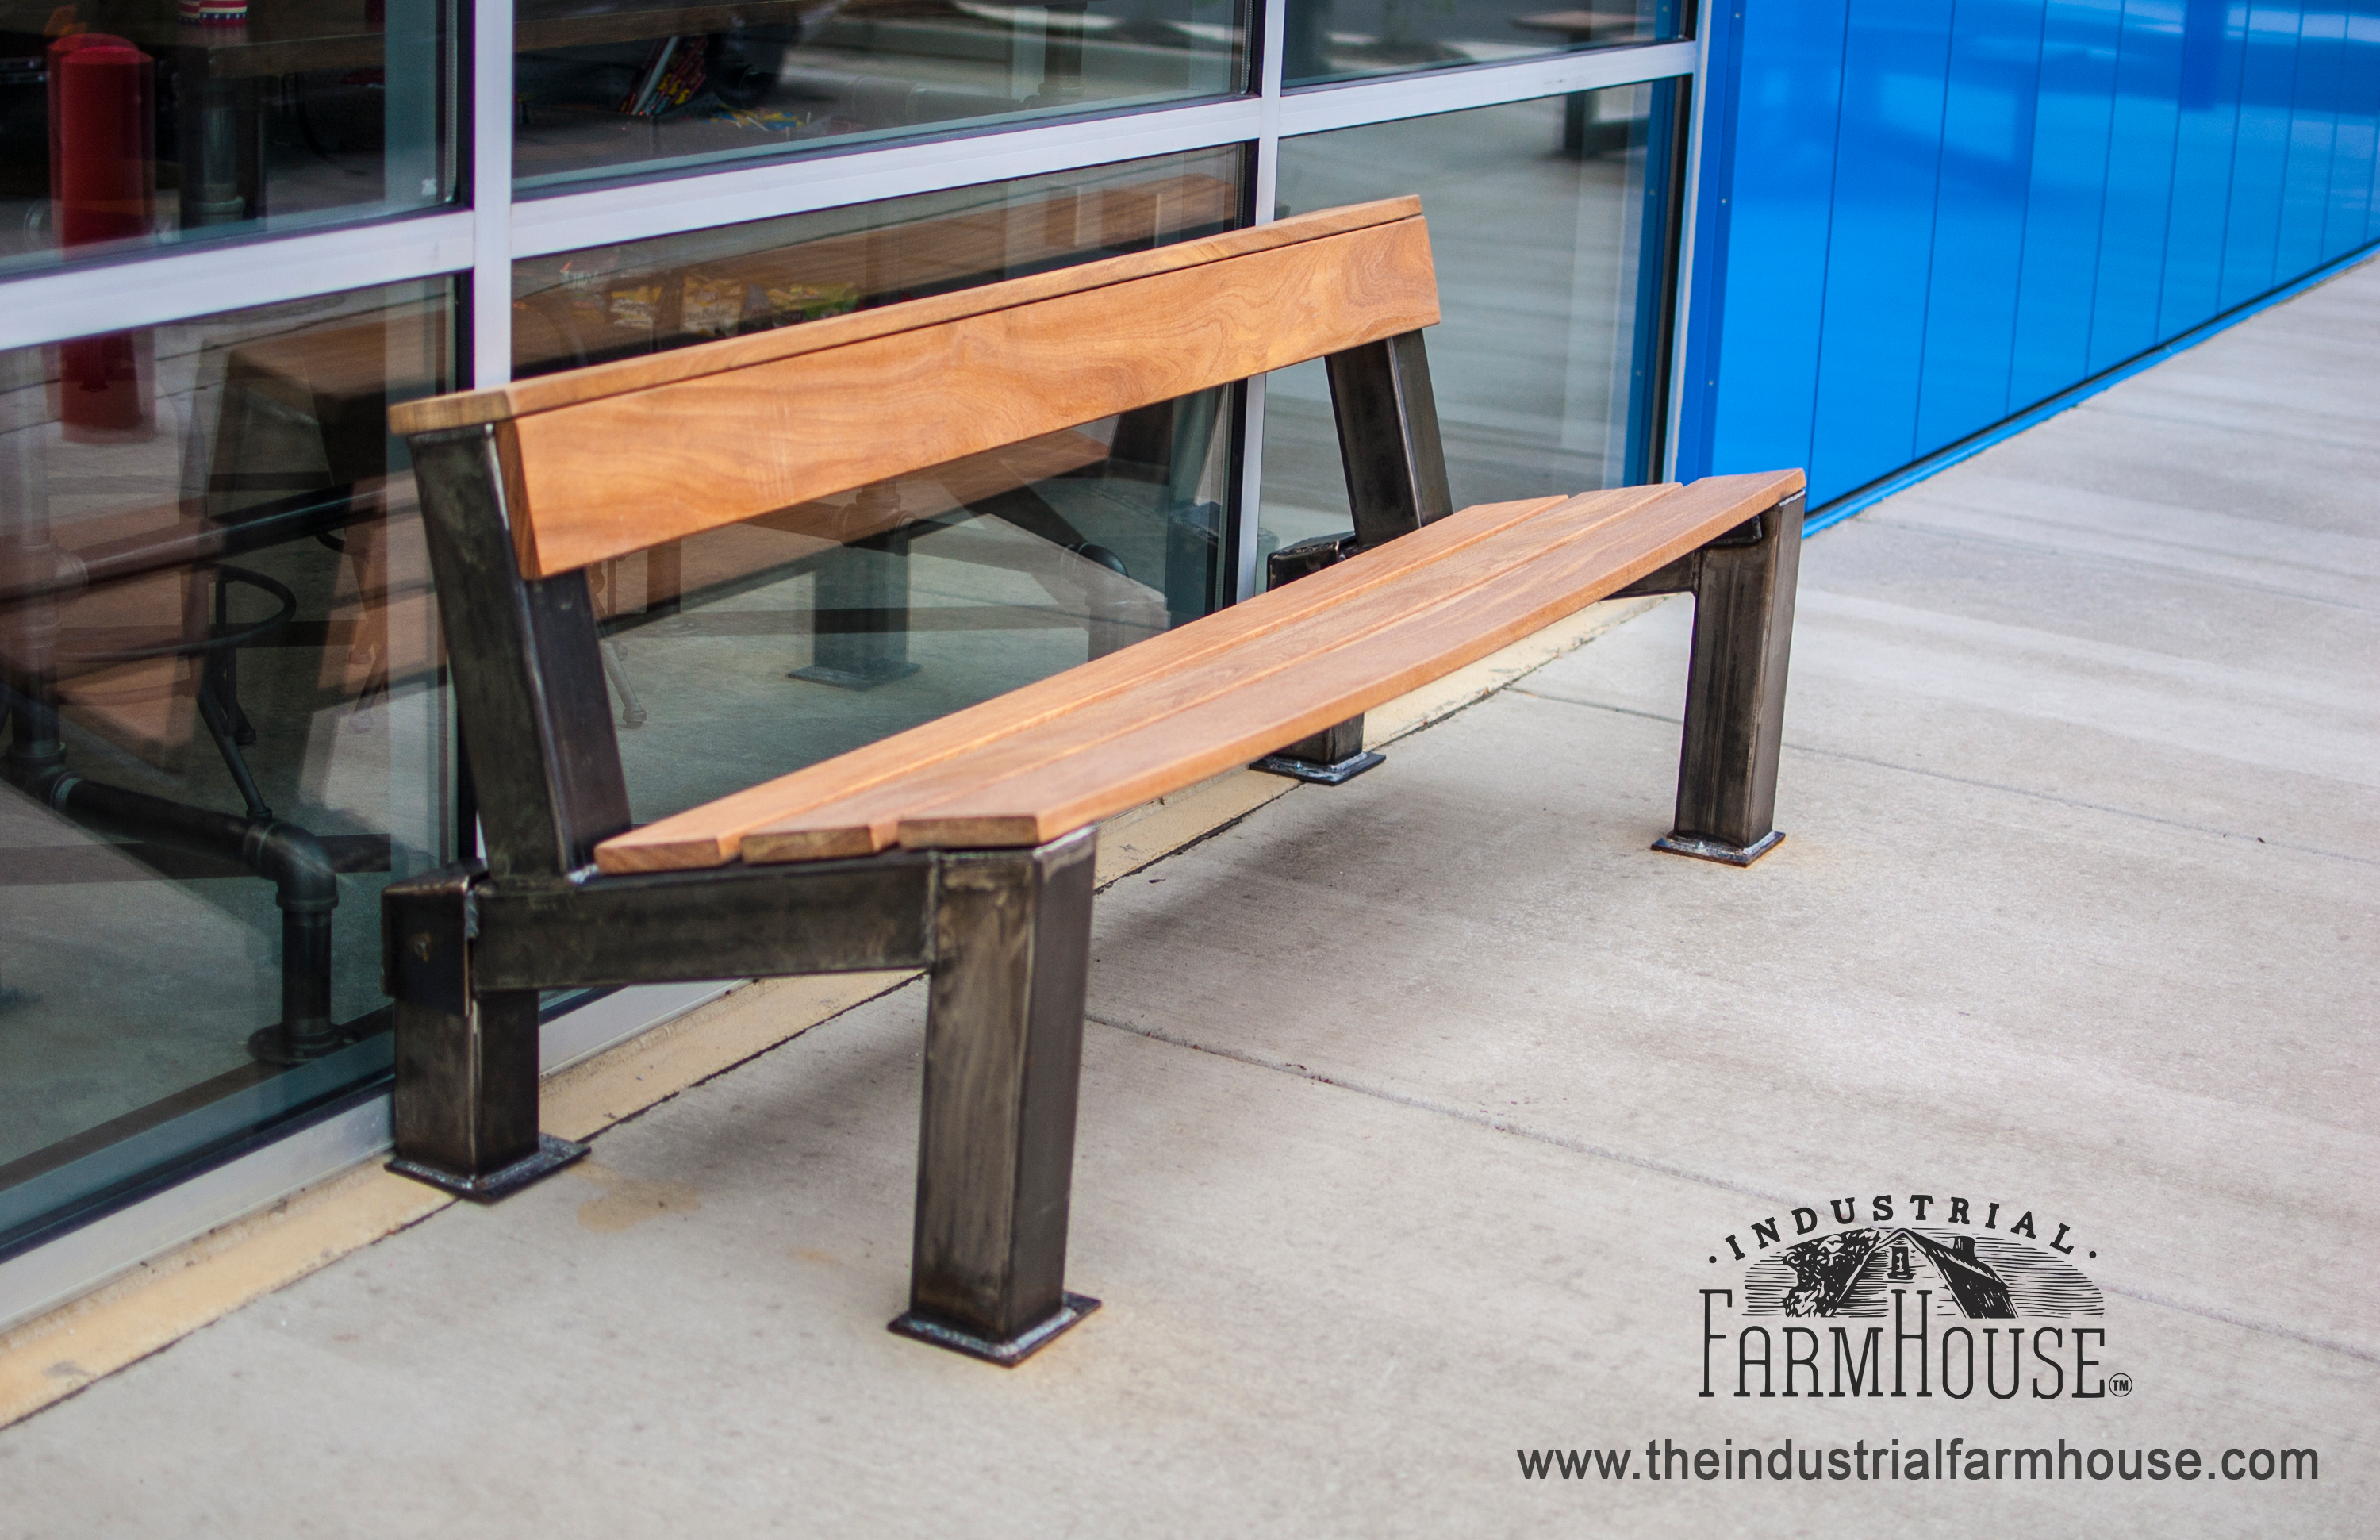 Outdoor Modern Industrial Style Ipe Wood Bench The